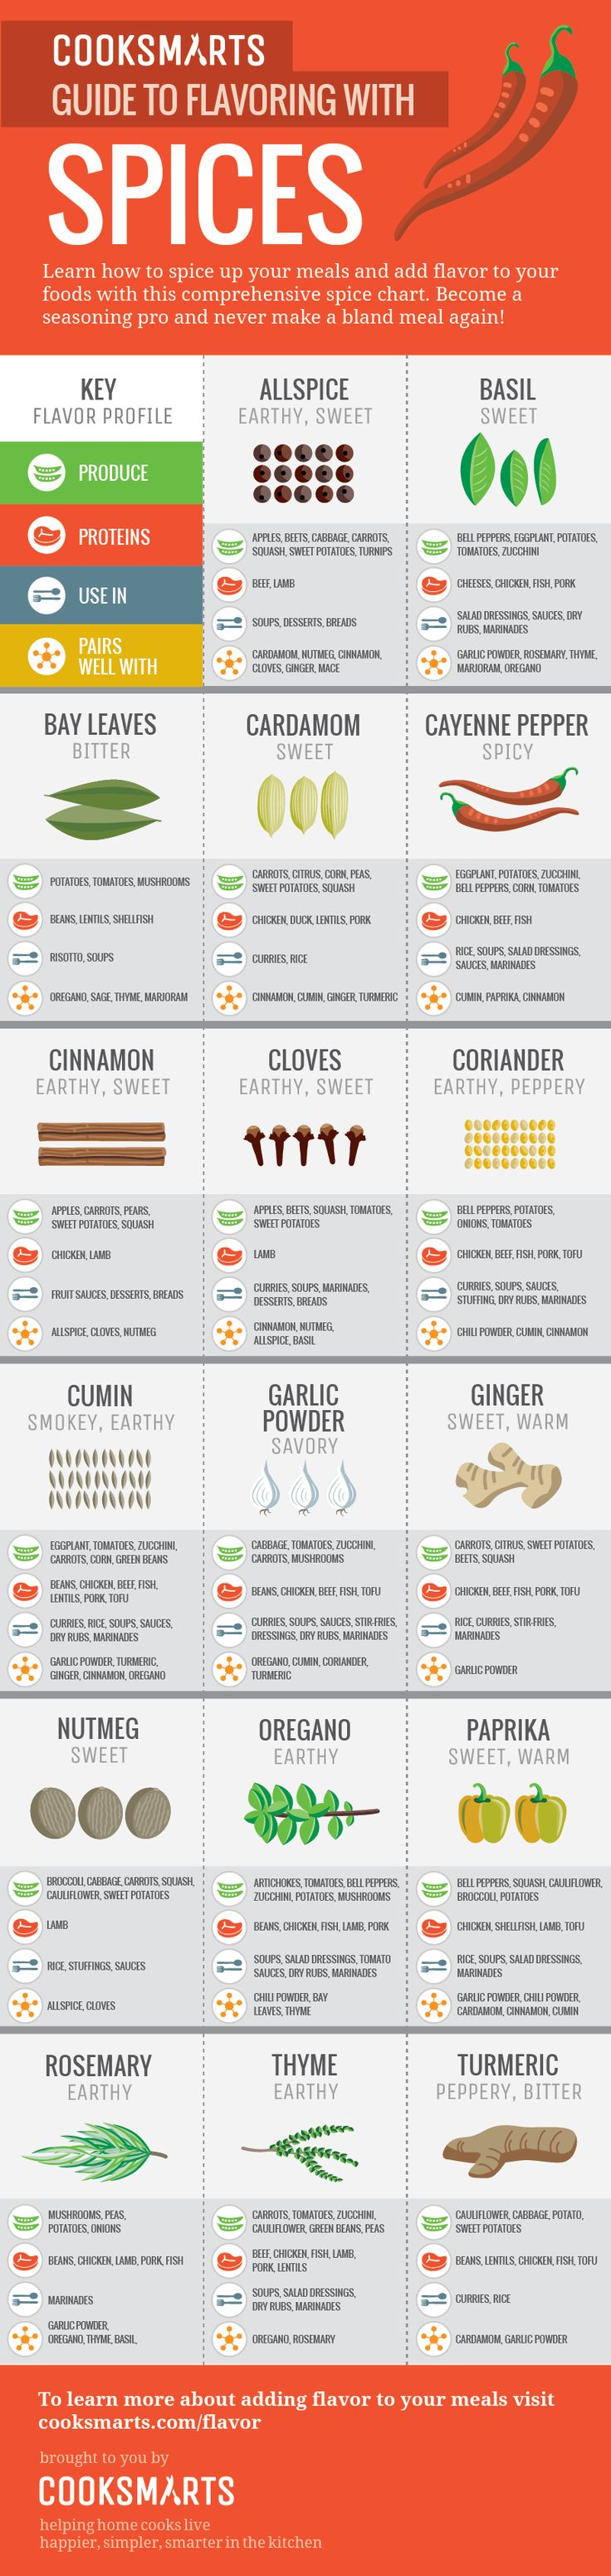 Spice+up+your+meals+and+add+flavor+to+your+meals+with+this+handy+spice+chart.